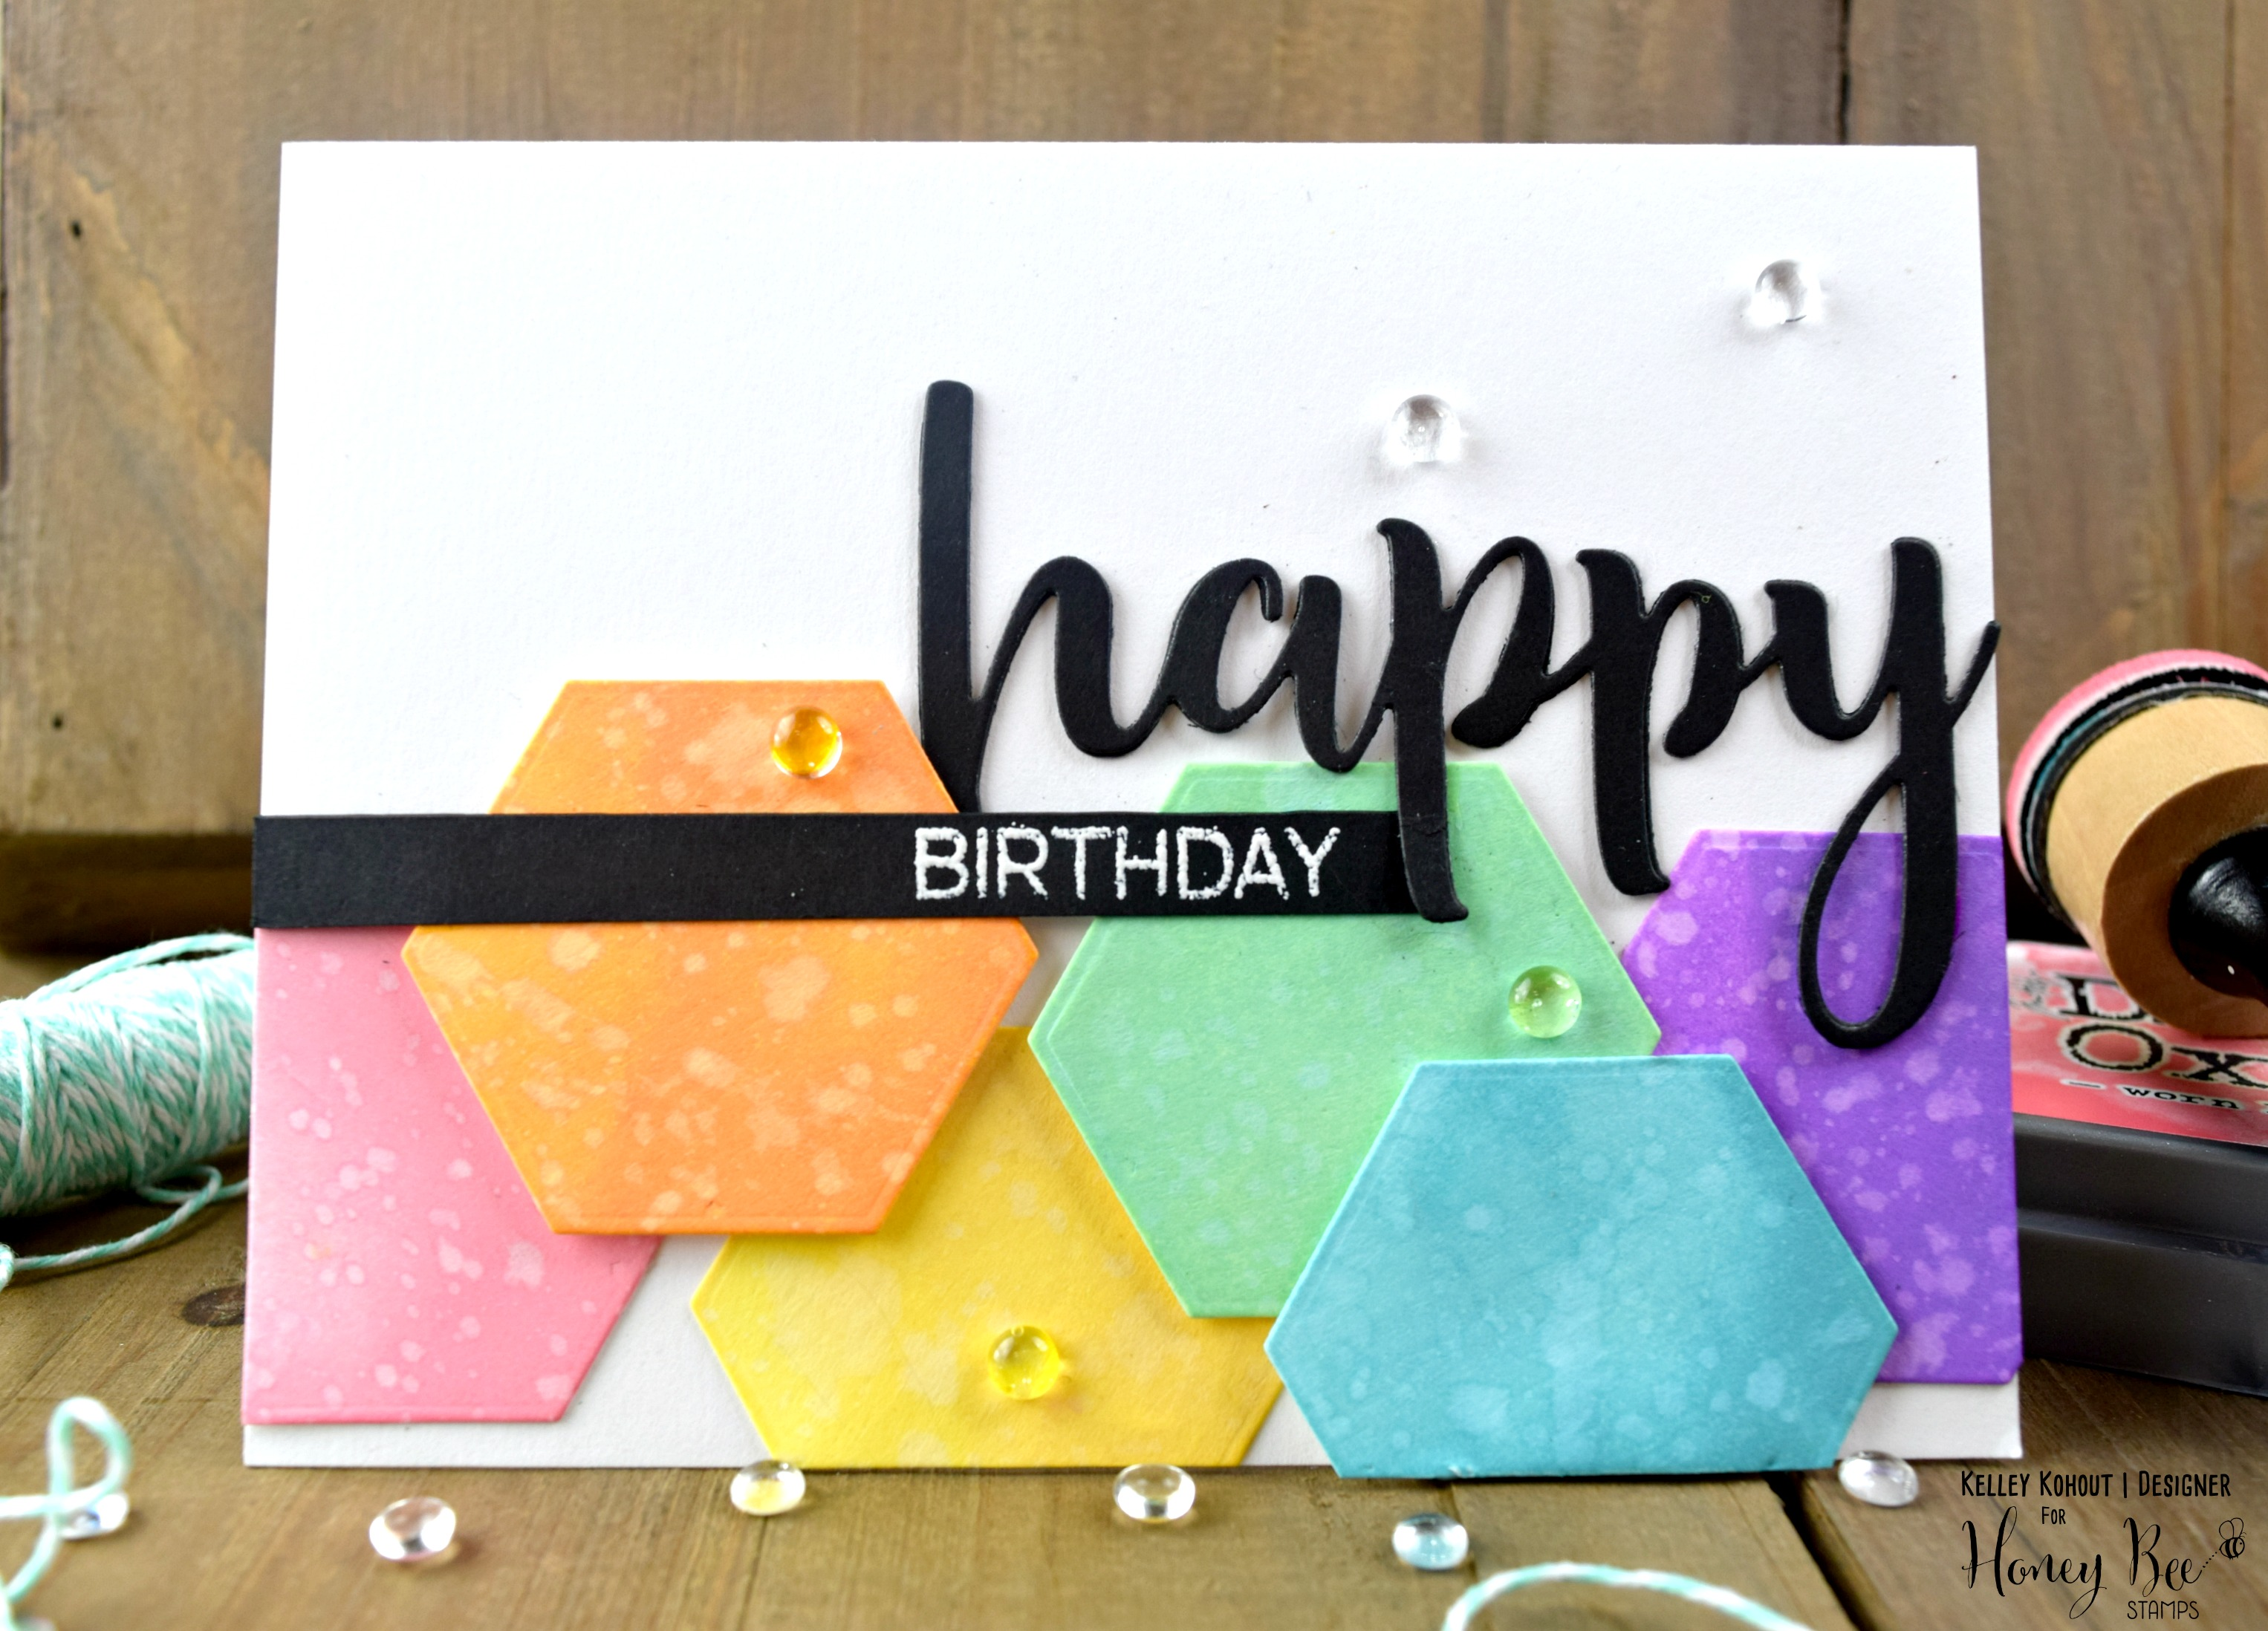 Happy Birthday! Featuring Hexagon Solid Stacked Dies